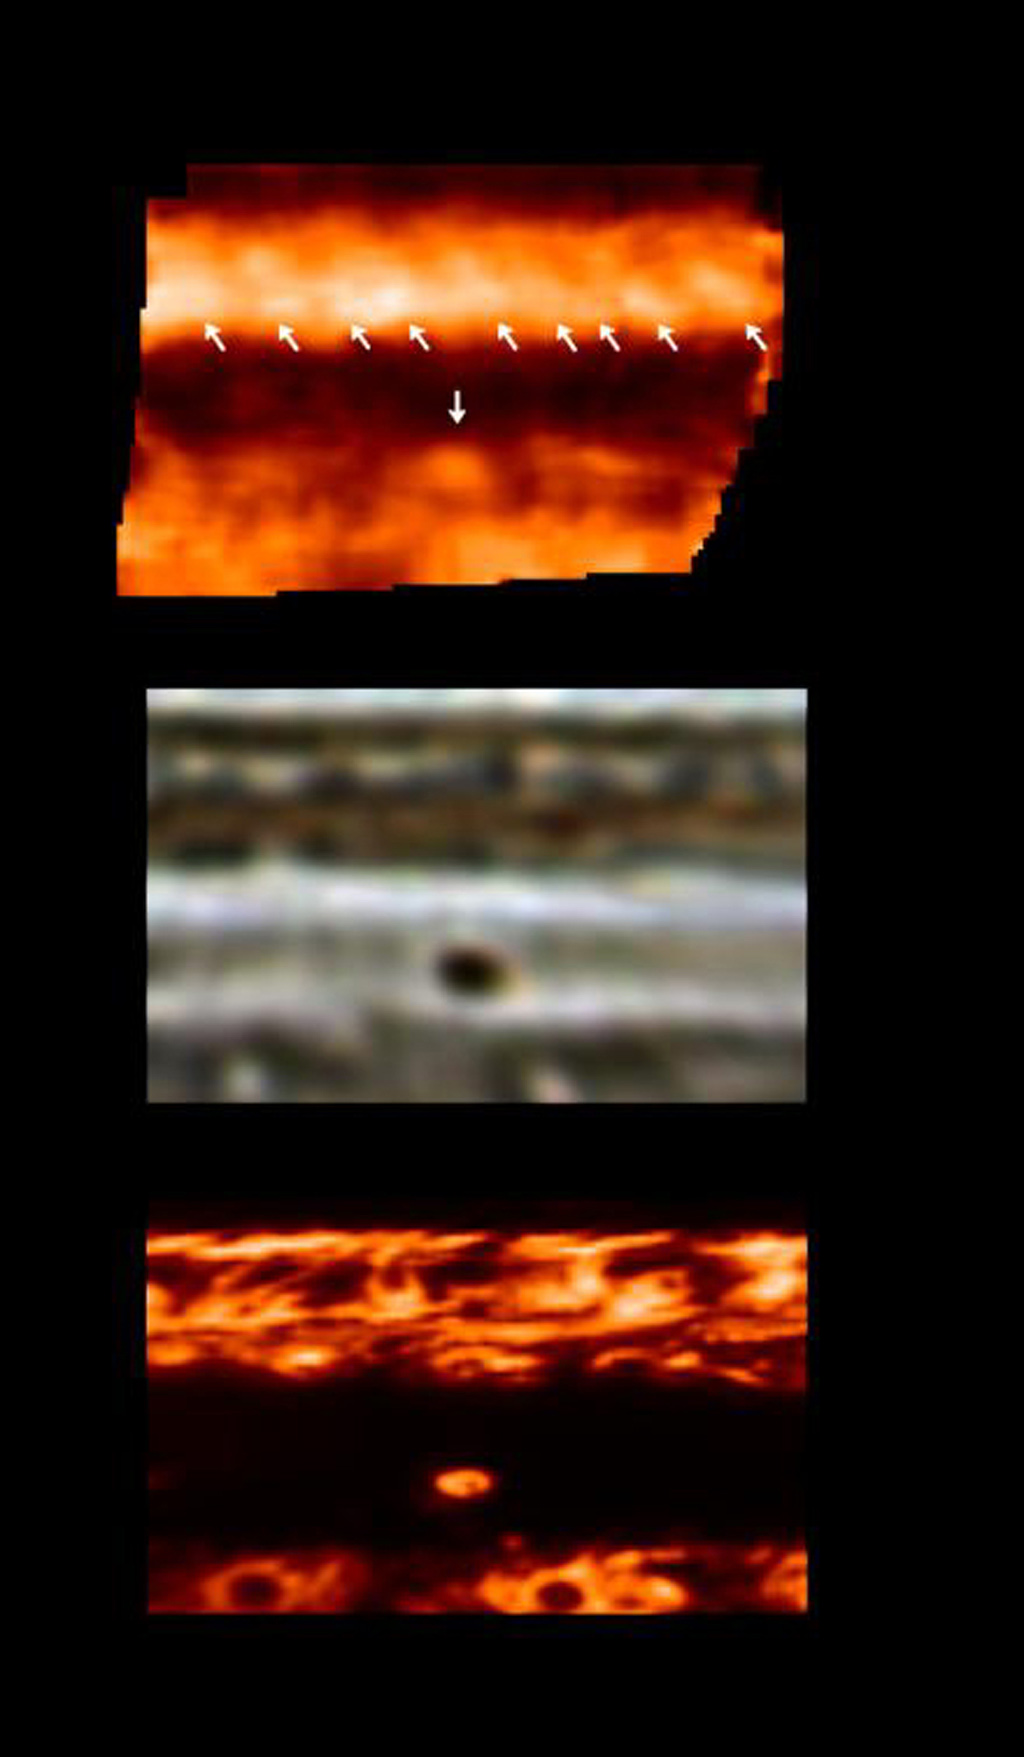 A recently discovered black spot in Jupiter's clouds is darker than any feature ever before observed on the giant planet. These three panels captured by NASA's Galileo spacecraft depict the same area of Jupiter's atmosphere.